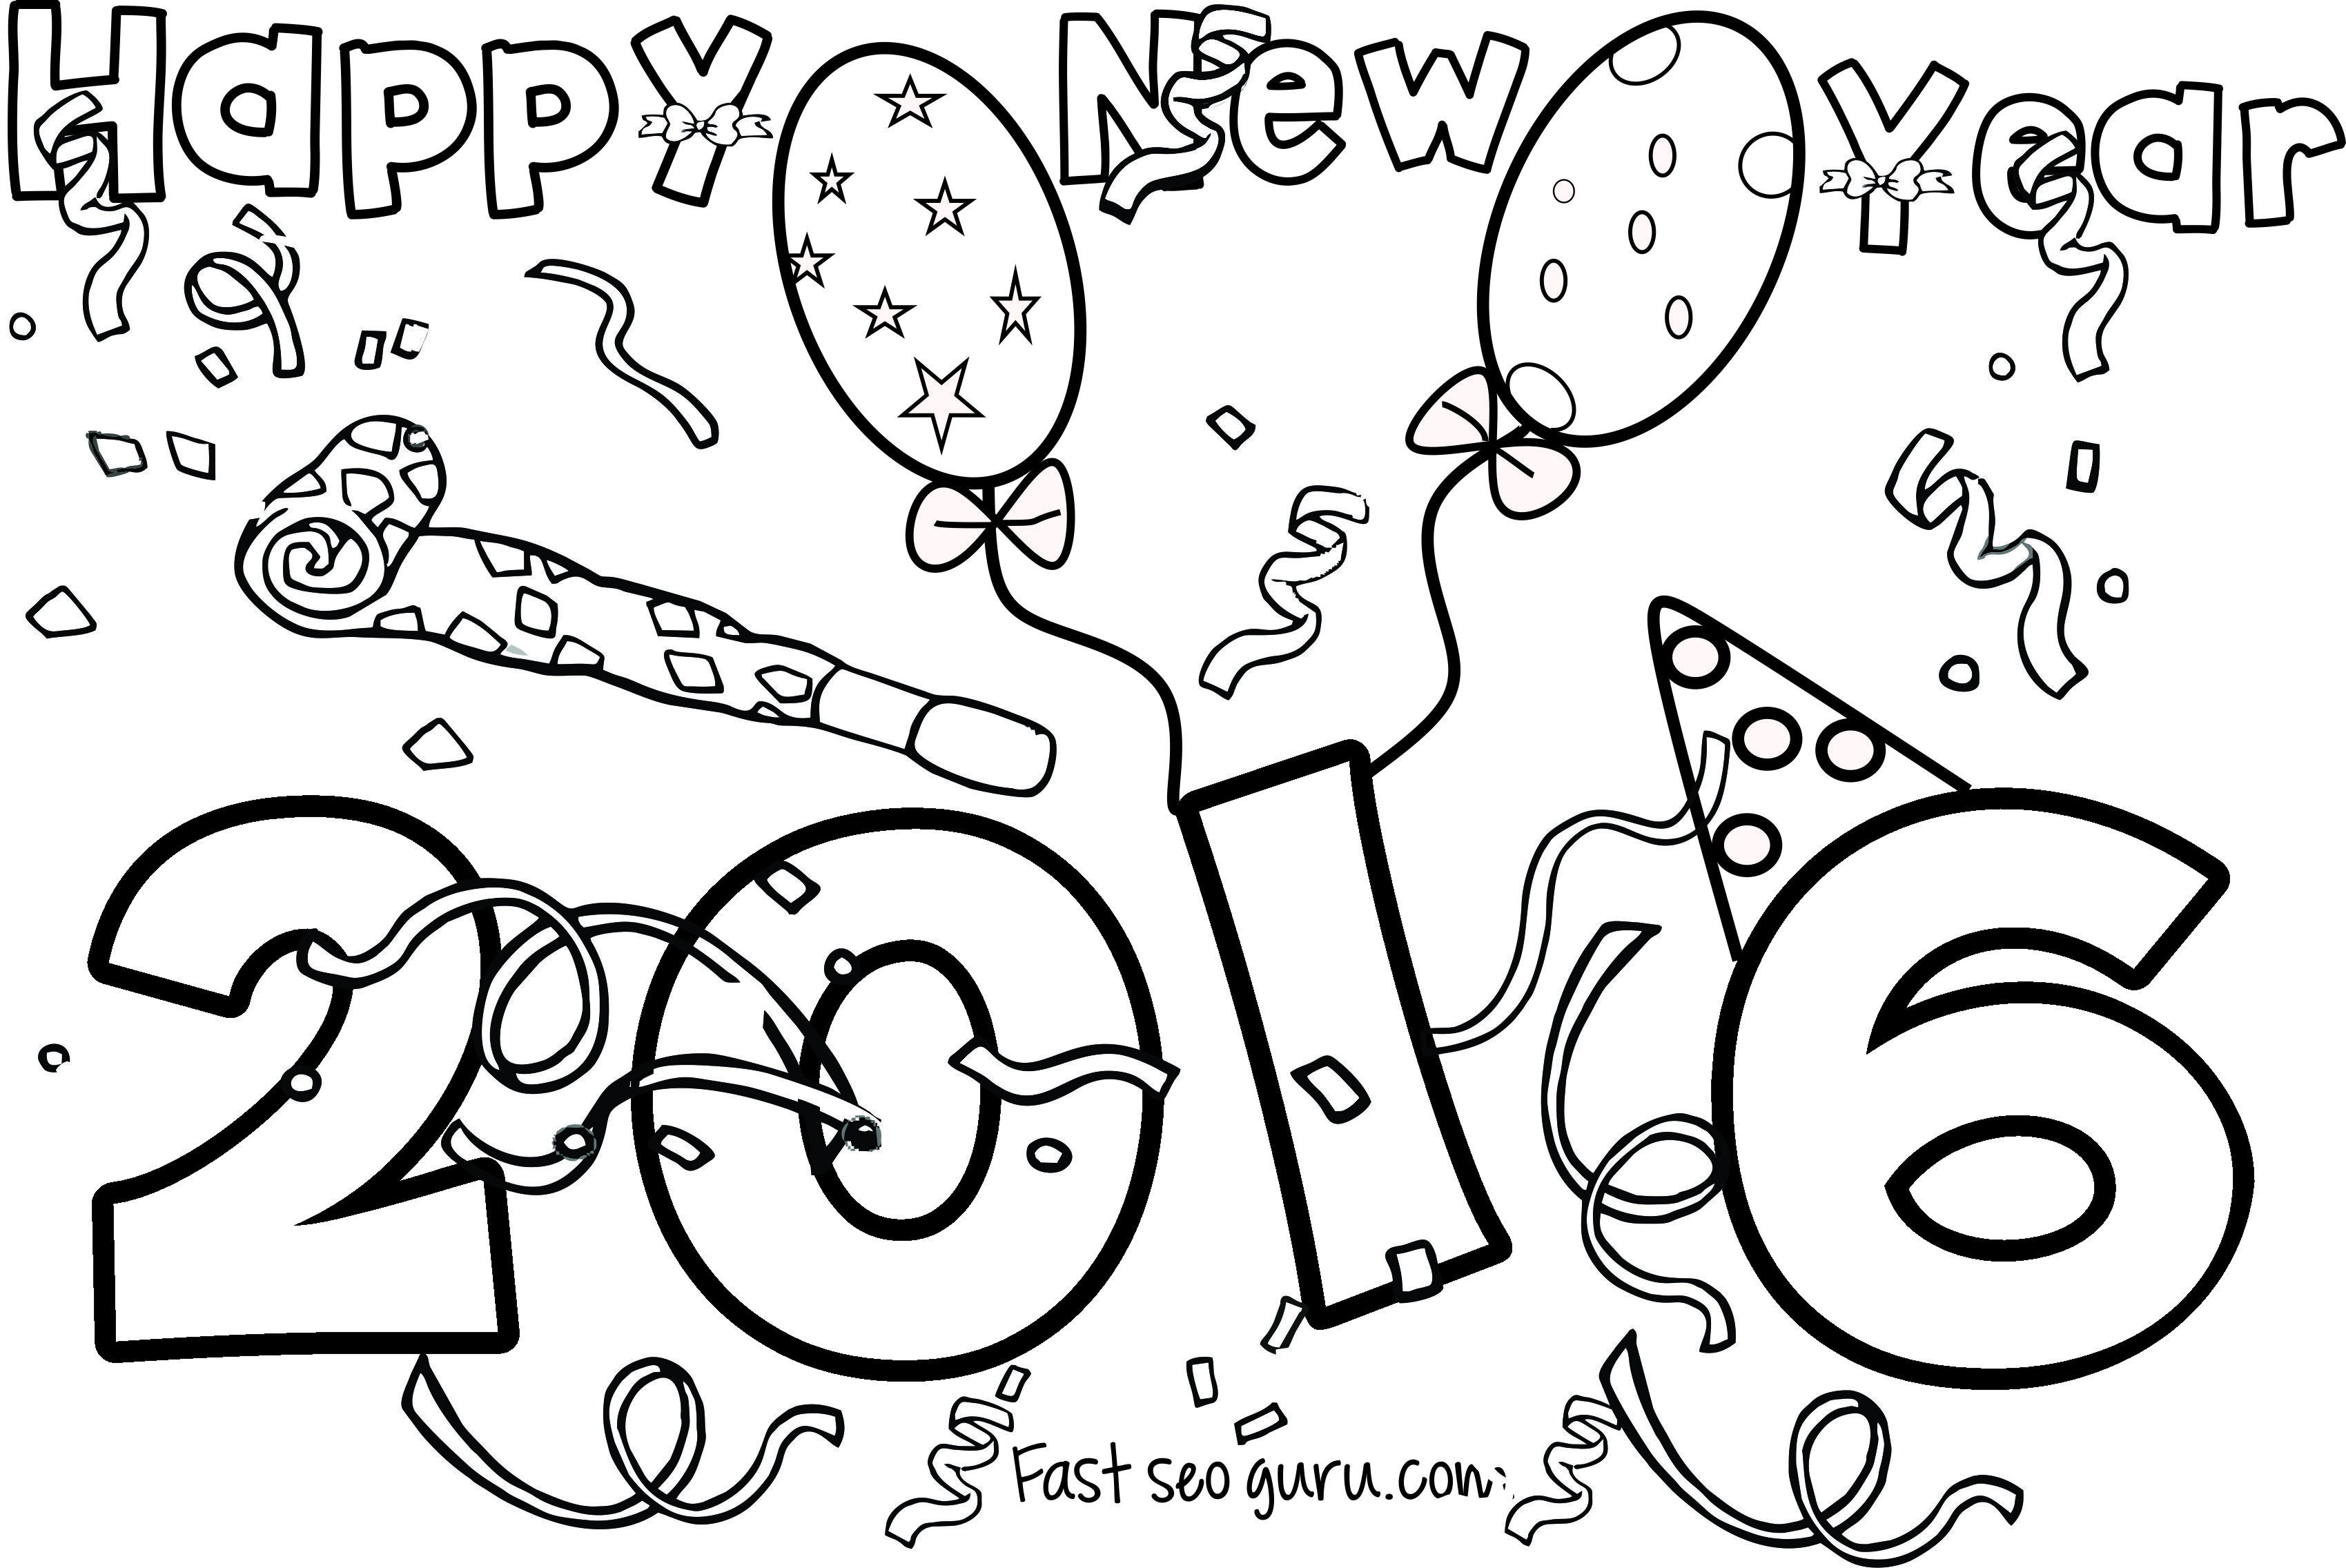 Happy new year 2016 coloring pages for kids | crafts | Pinterest